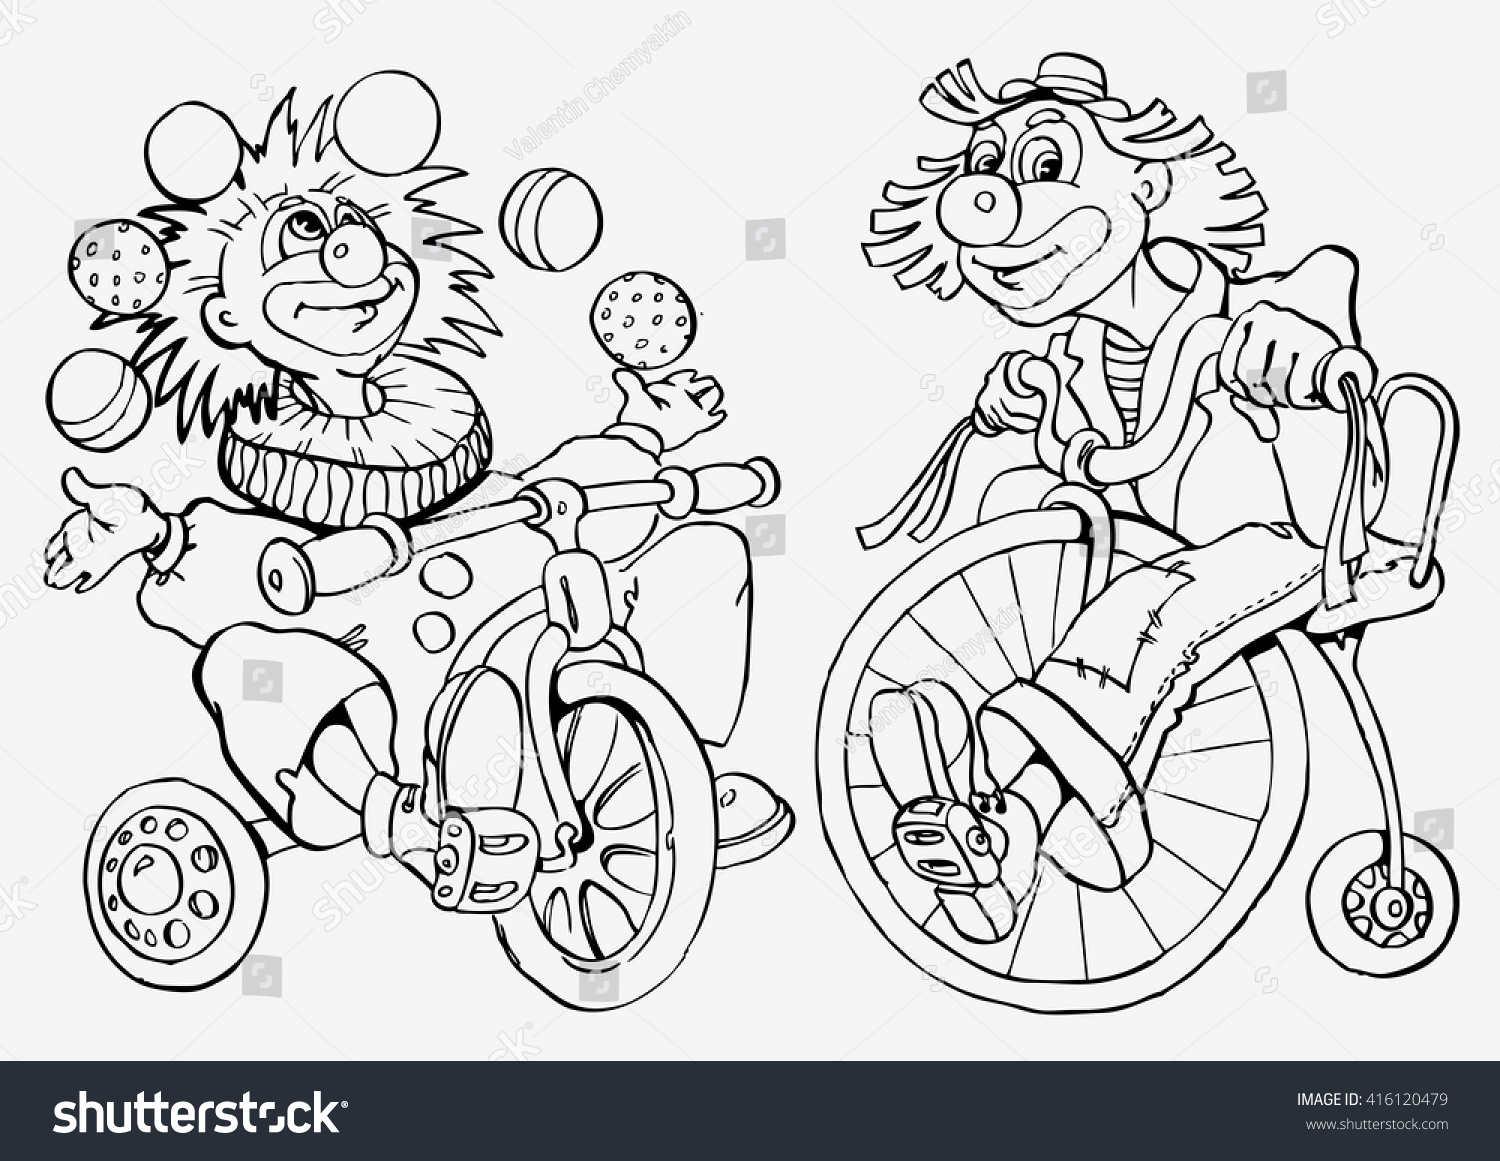 Two Clowns Two Cheerful Circus Clown Stock Vector 416120479 ...